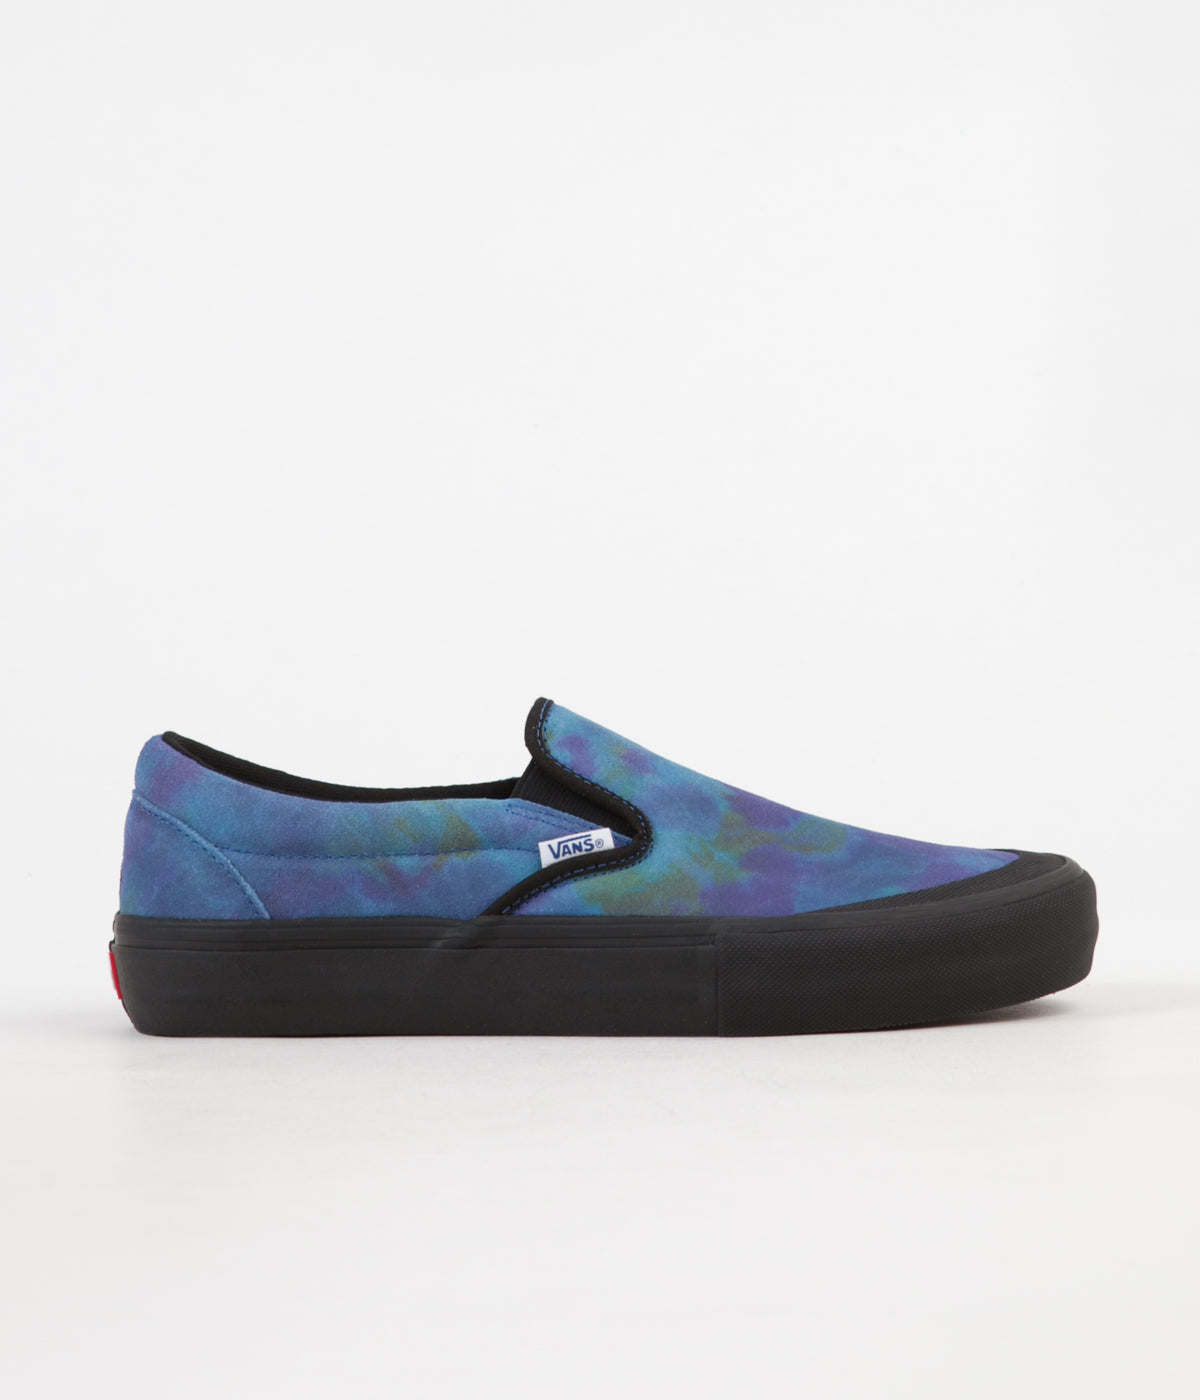 1c01e9bc30efb8 Vans Slip-On Pro Shoes - (Ronnie Sandoval) Northern Lights